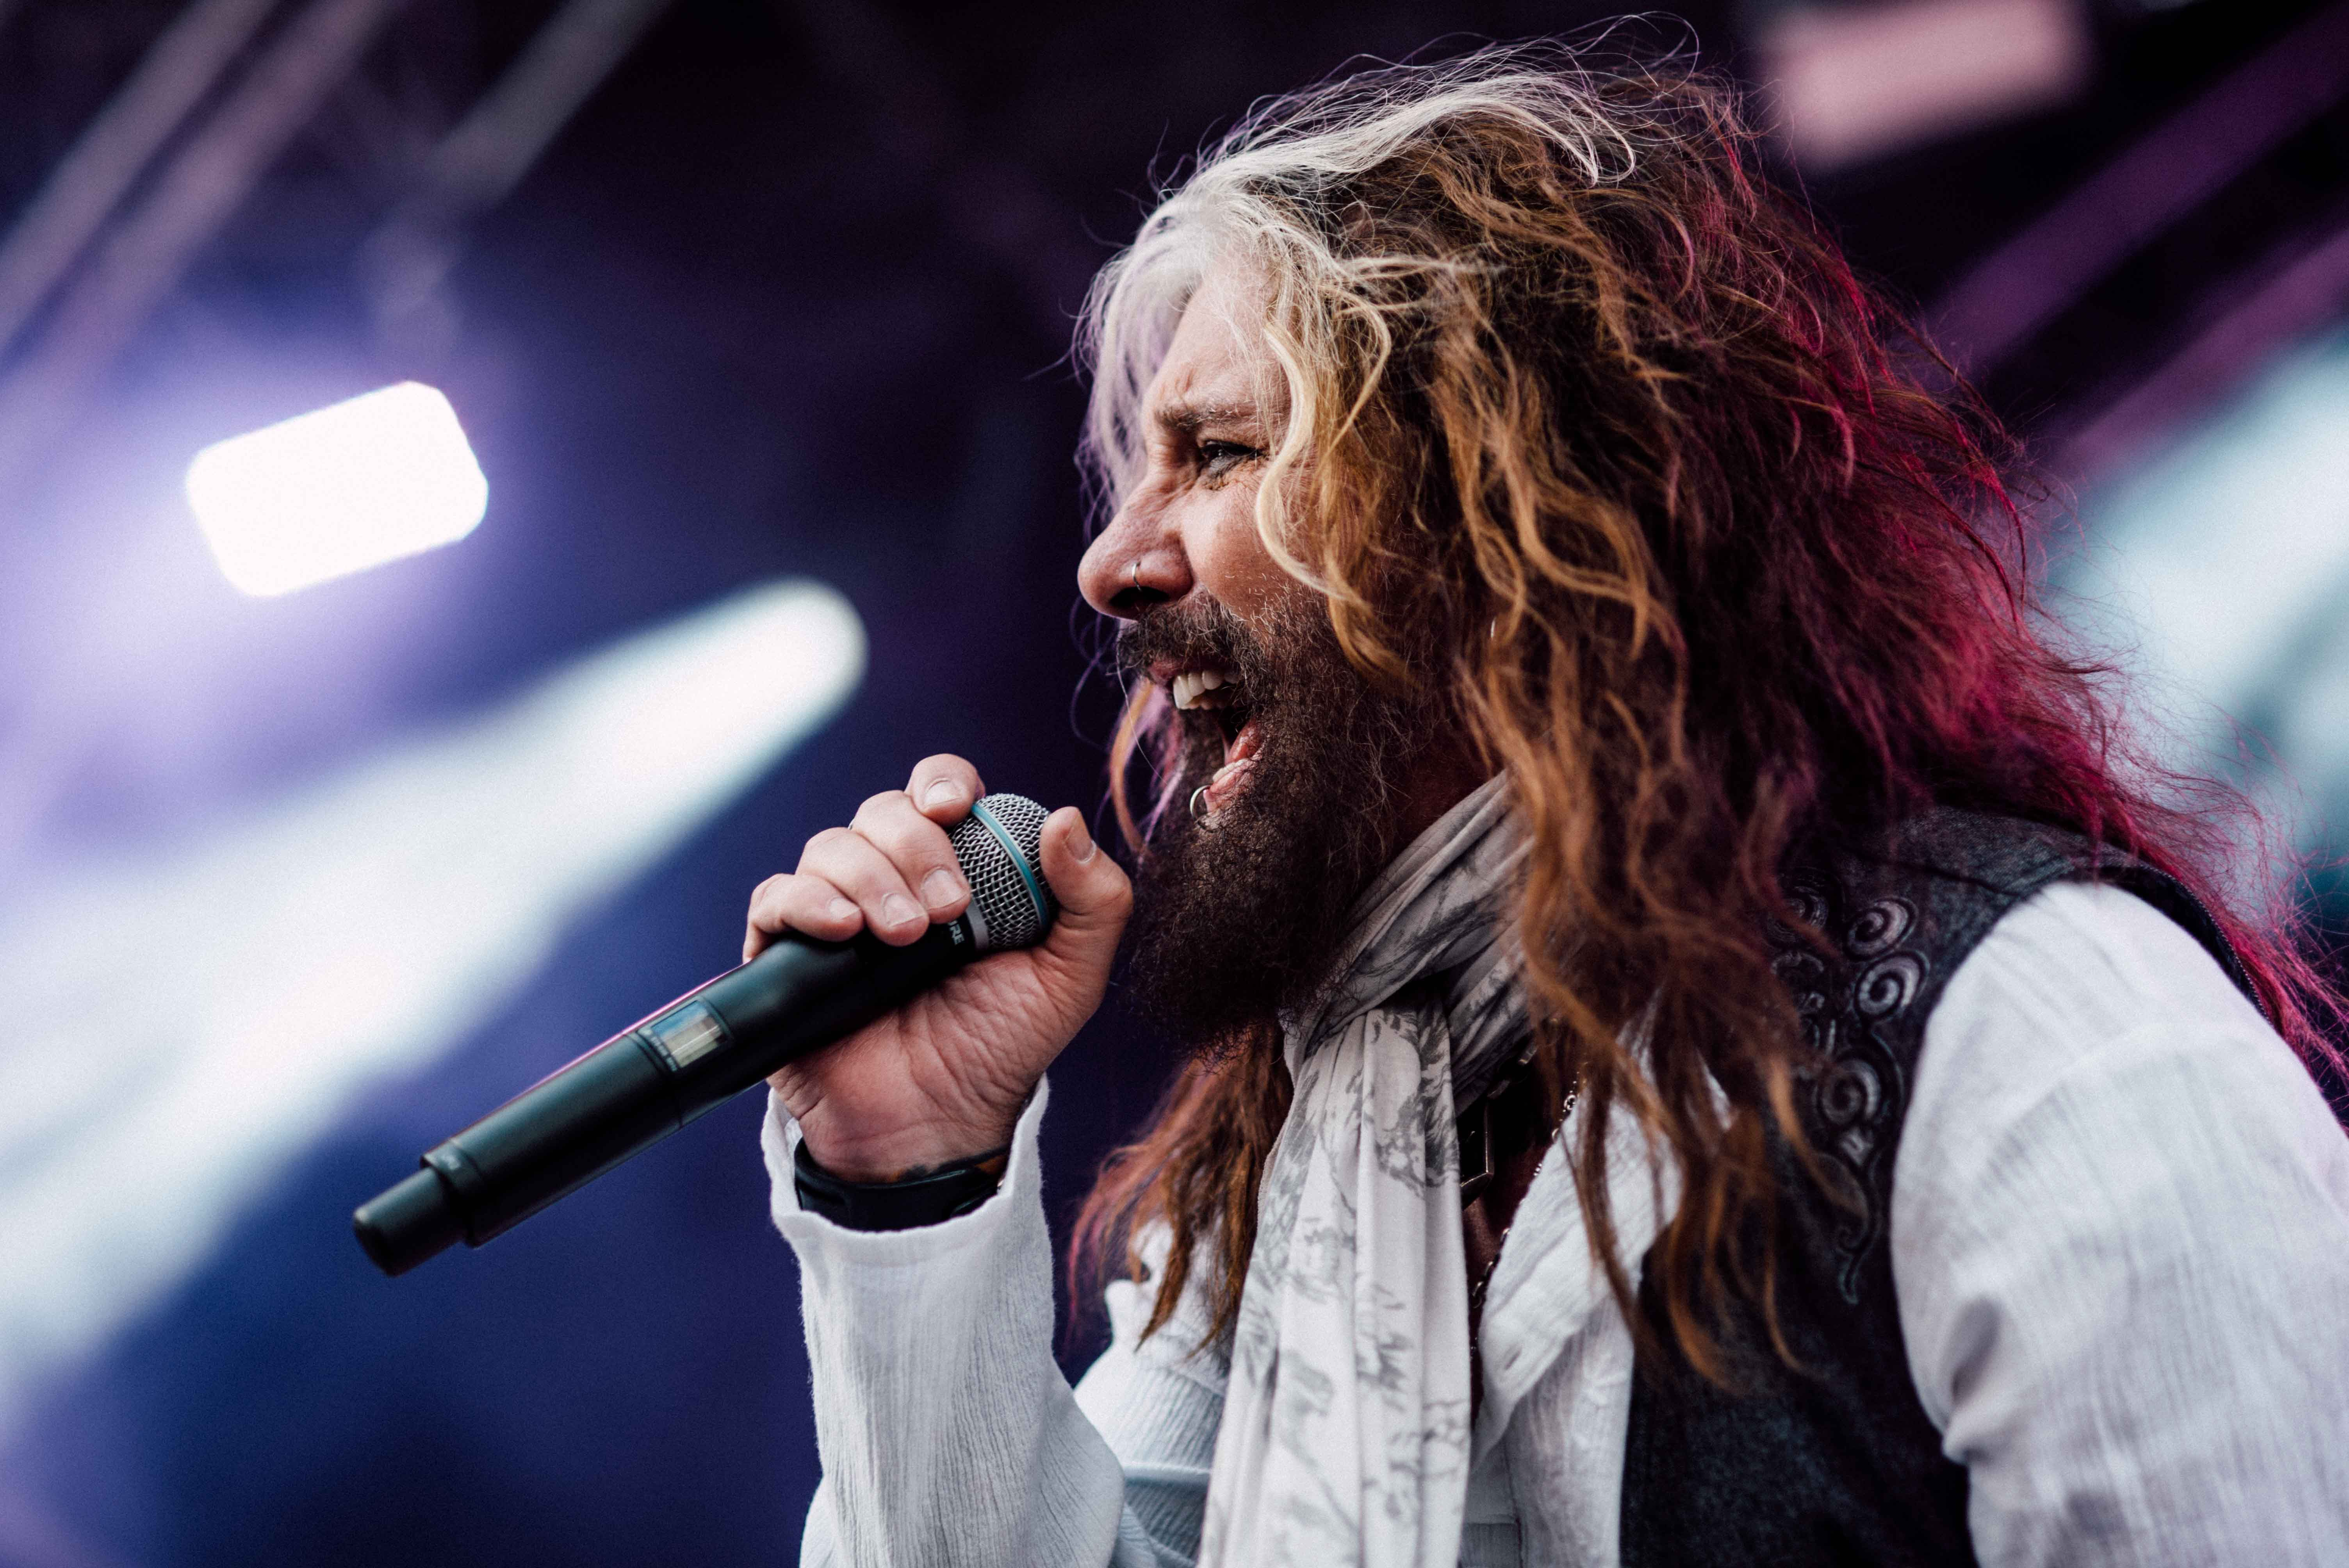 OH-Thedeaddaisies-2016--0054 John Scream